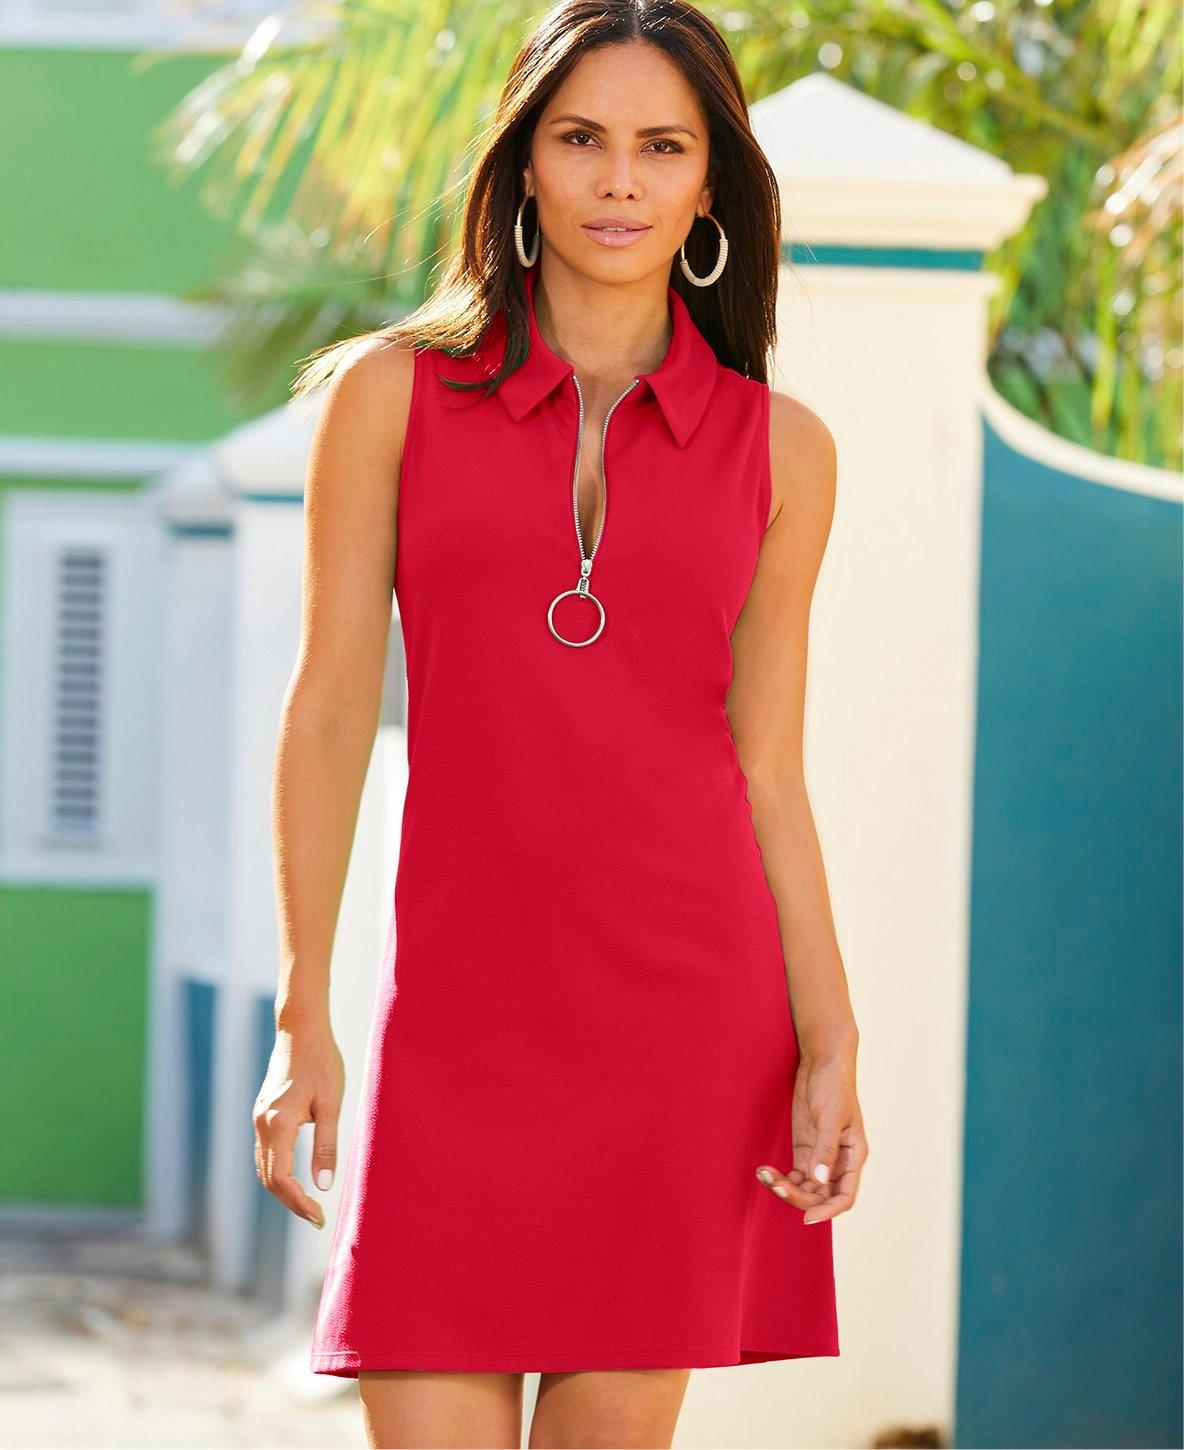 model wearing a red sleeveless collared sport dress and gold hoop earrings.